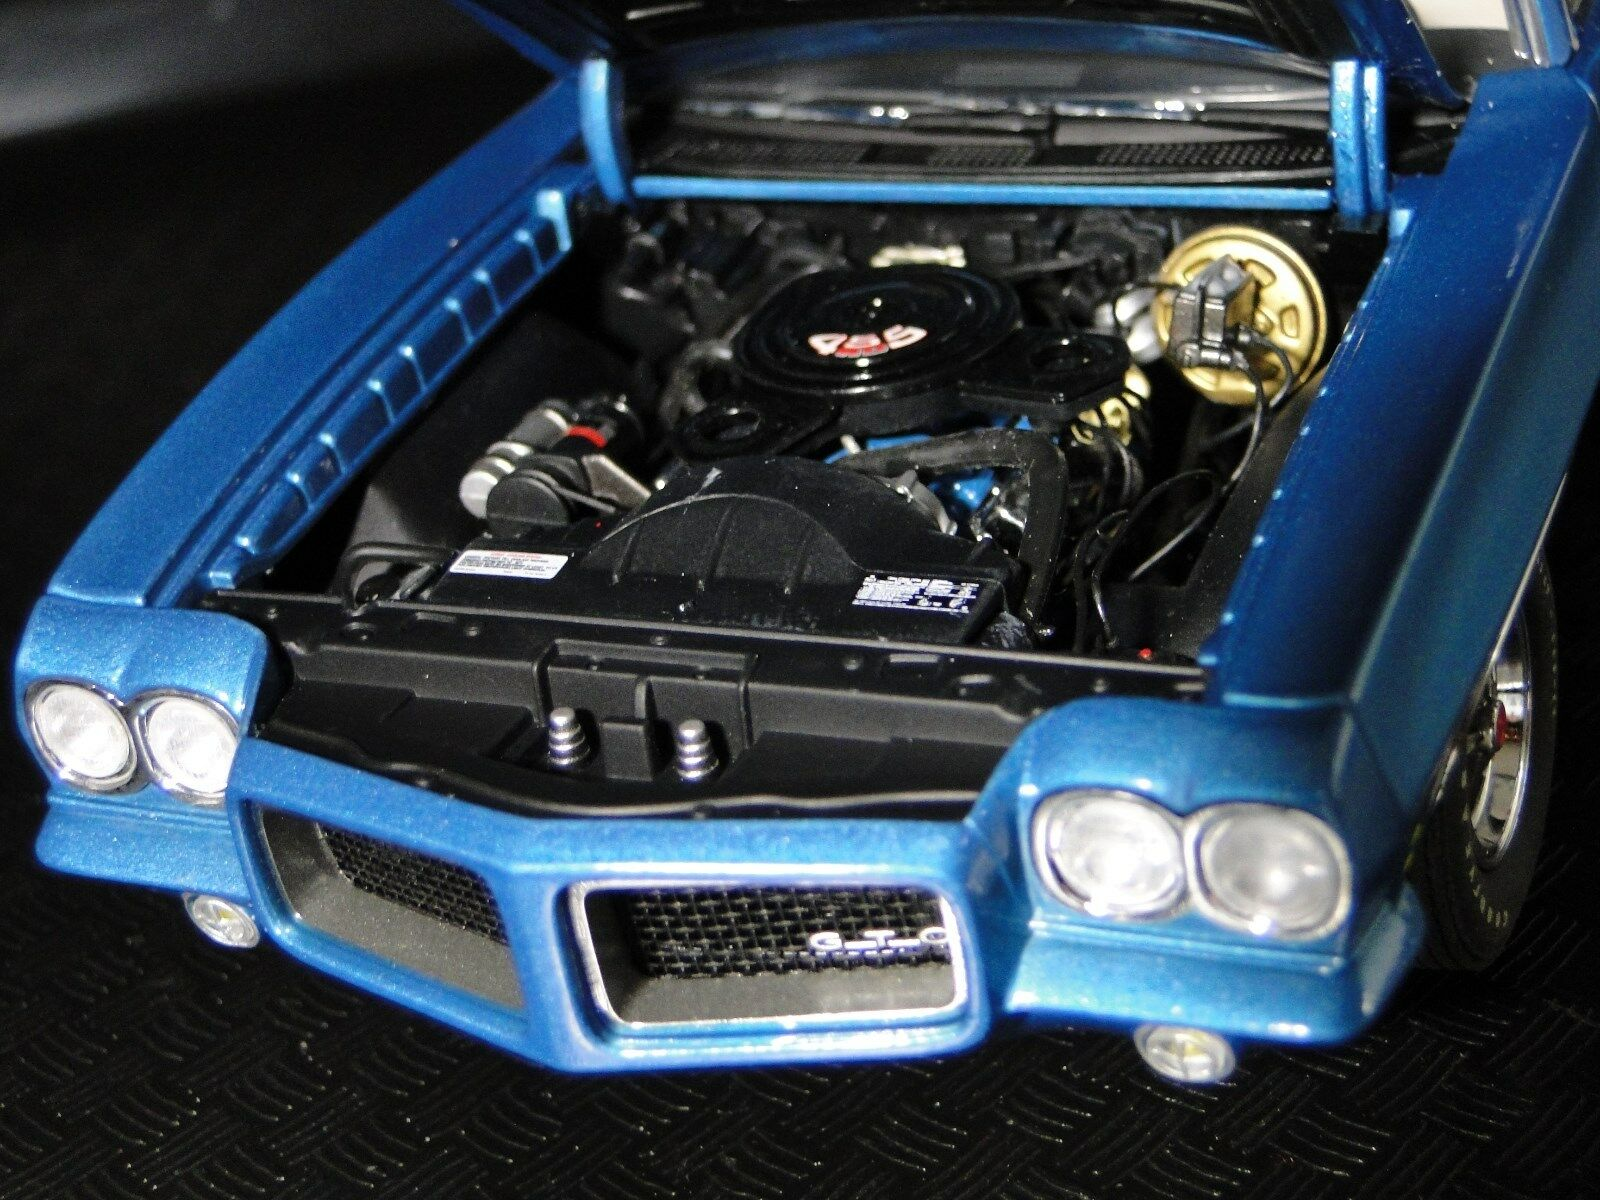 Pontiac Built GTO 1970s Hot Rod Sport Car Race 25 Vintage Classic 1 24 Model 18